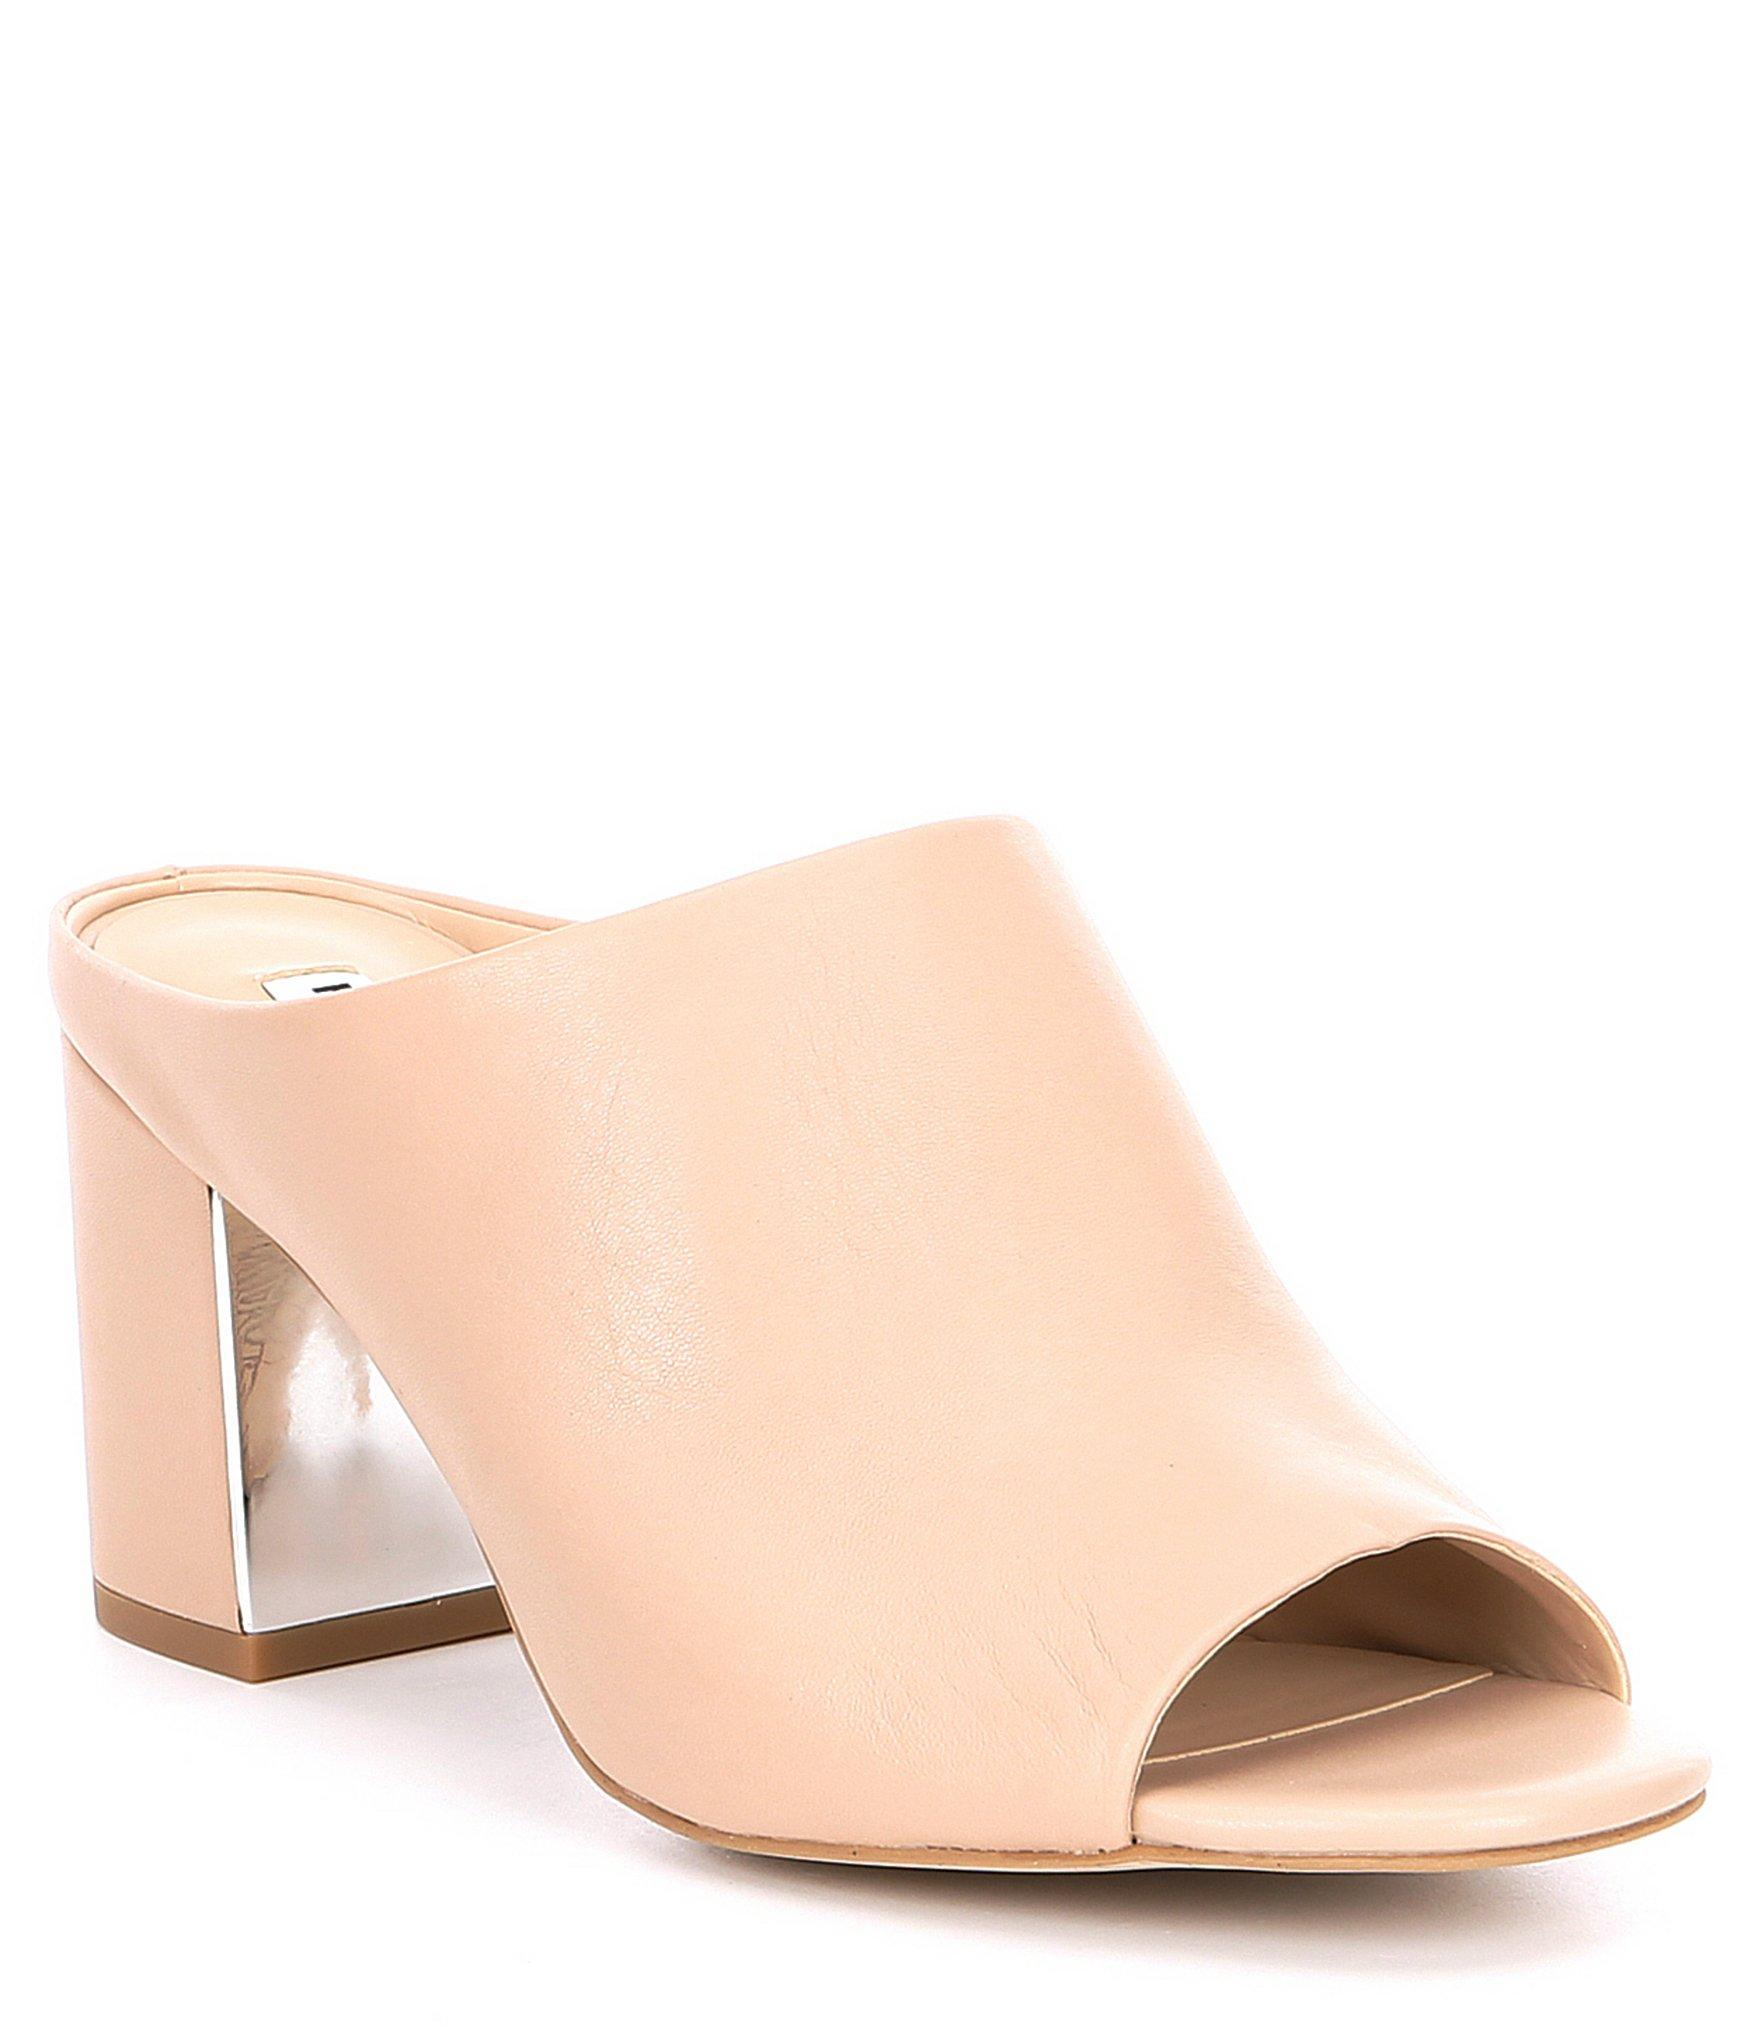 8a6c785133 Lyst - Karl Lagerfeld Jensen Leather Block Heel Mules in Natural